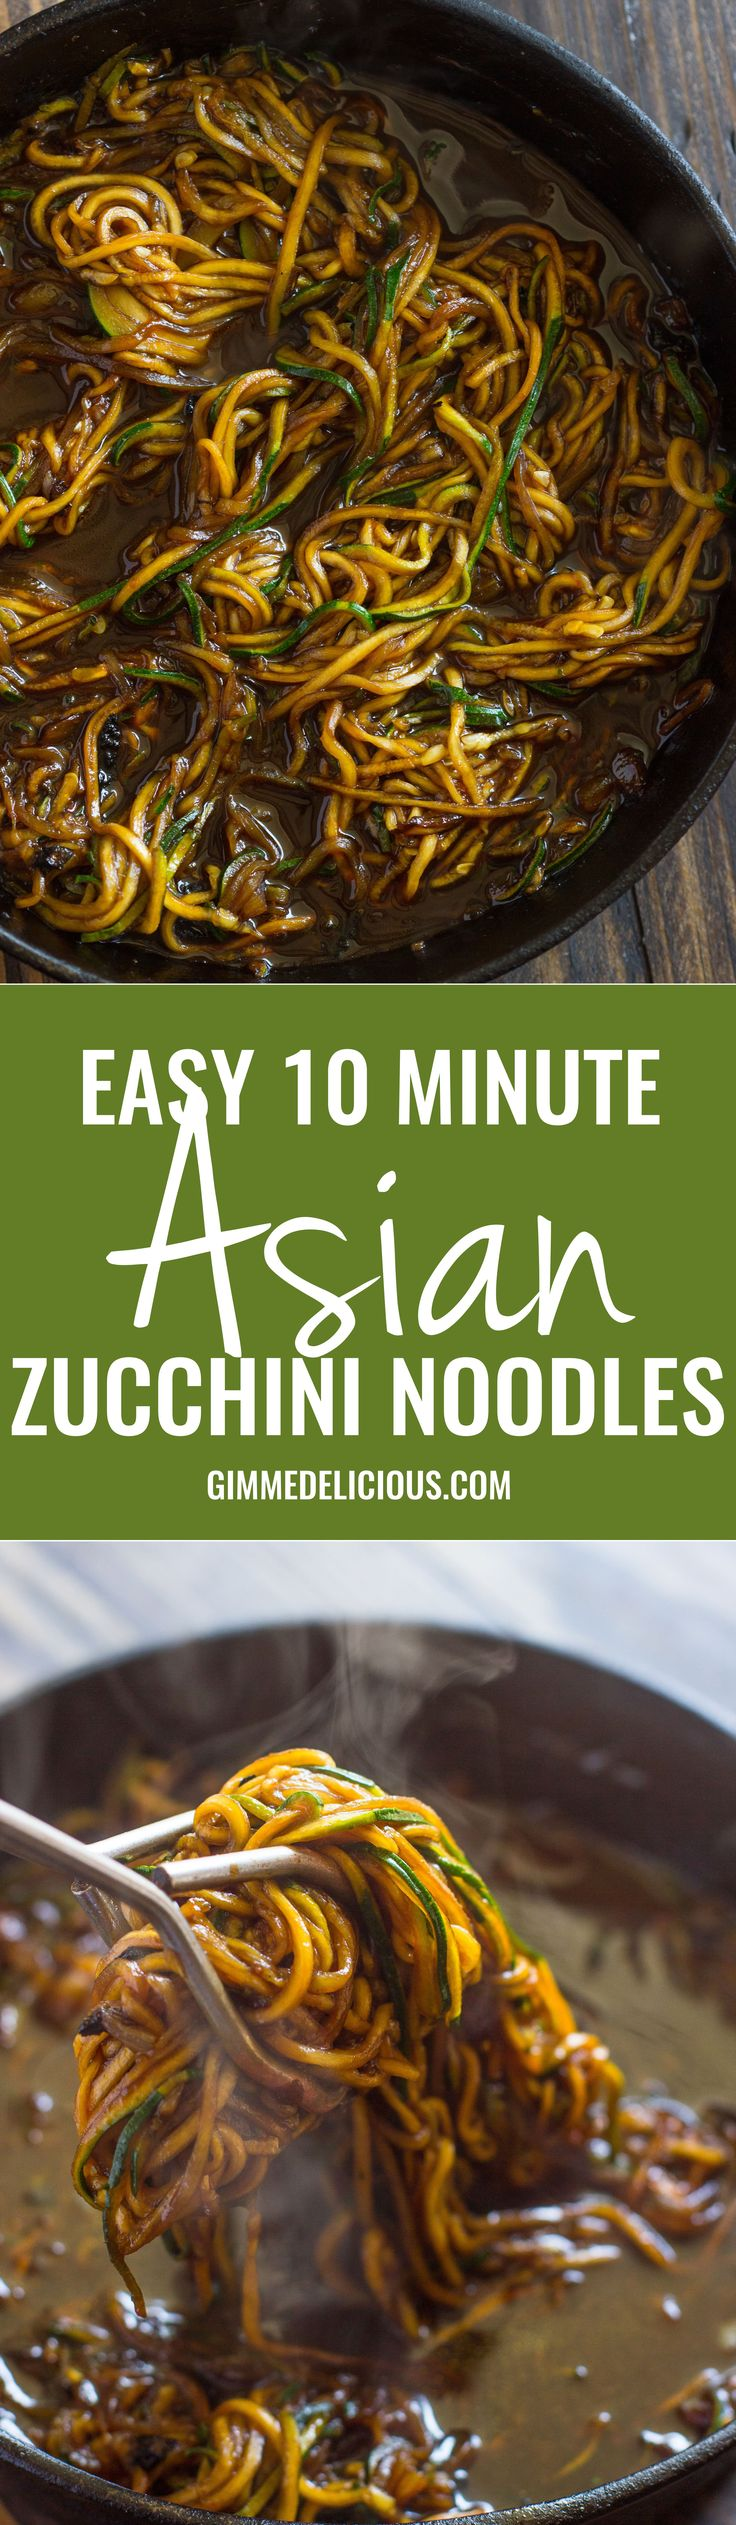 Easy 10 Minute Asian Zucchini Noodles (low-carb, Paleo).......